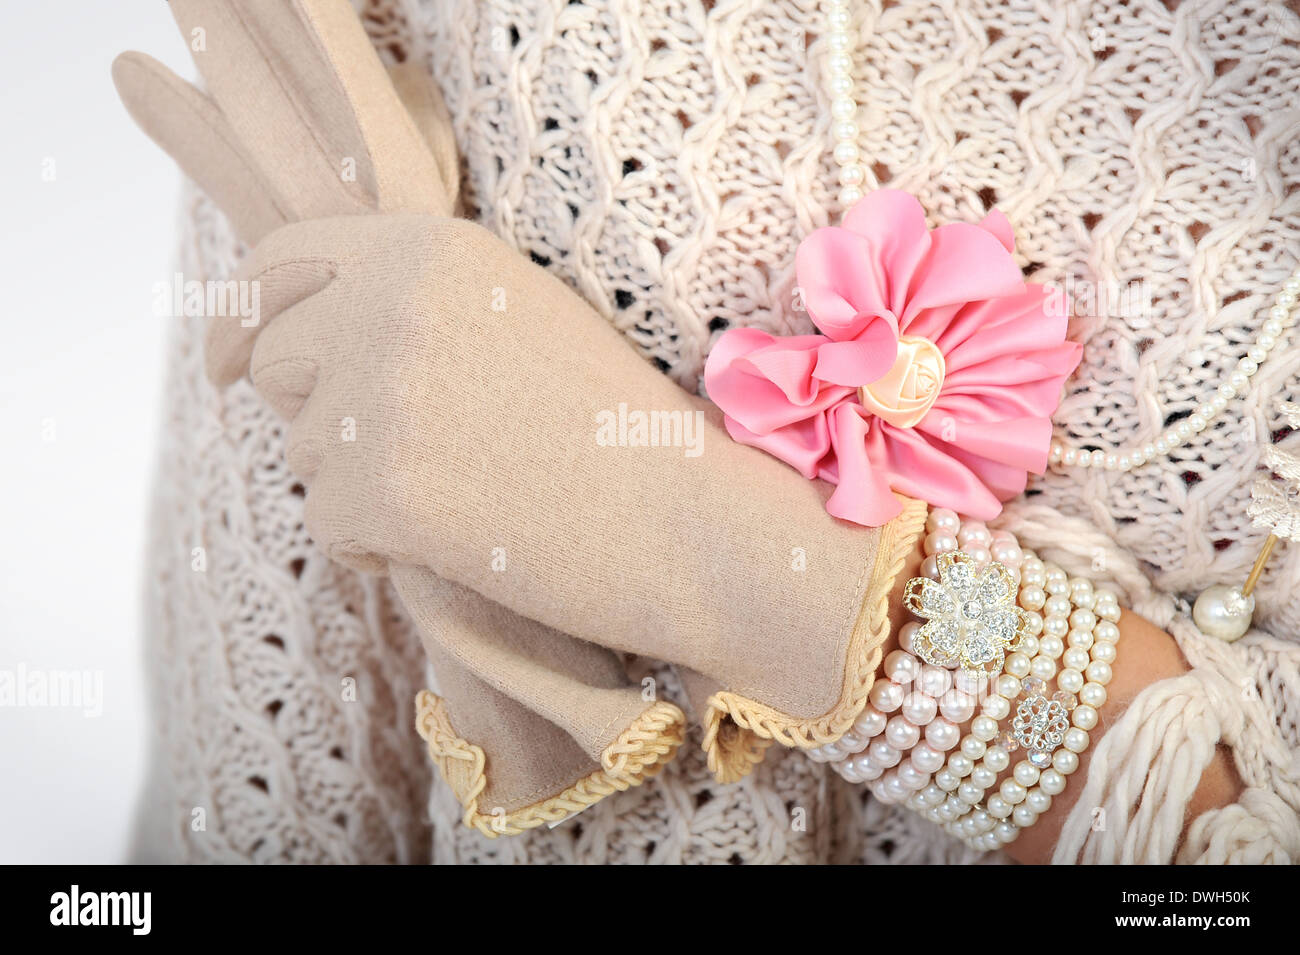 Close-up of woman's hands with elegant beige gloves and jewellry - Stock Image